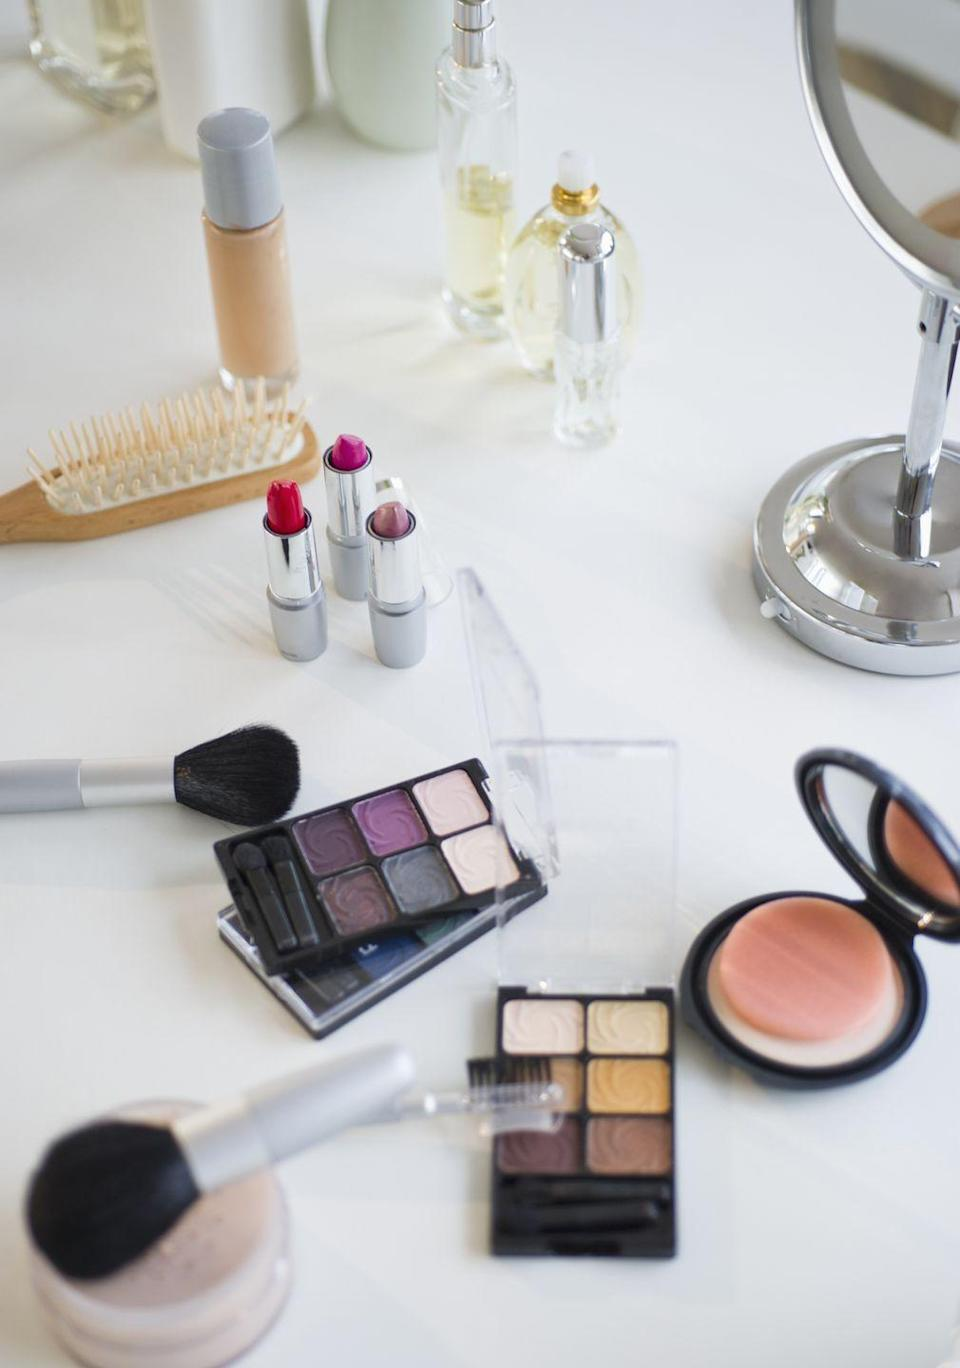 """<p>Concealers and liquid foundation <a href=""""http://www.goodhousekeeping.com/beauty/makeup/tips/a17714/expired-beauty-products/"""" rel=""""nofollow noopener"""" target=""""_blank"""" data-ylk=""""slk:can last"""" class=""""link rapid-noclick-resp"""">can last</a> for six months. After that you risk bacteria growing in the vile (yum!) while mascara should be chucked after three months. The good news is that your favorite lipstick and gloss can keep for two years.</p>"""